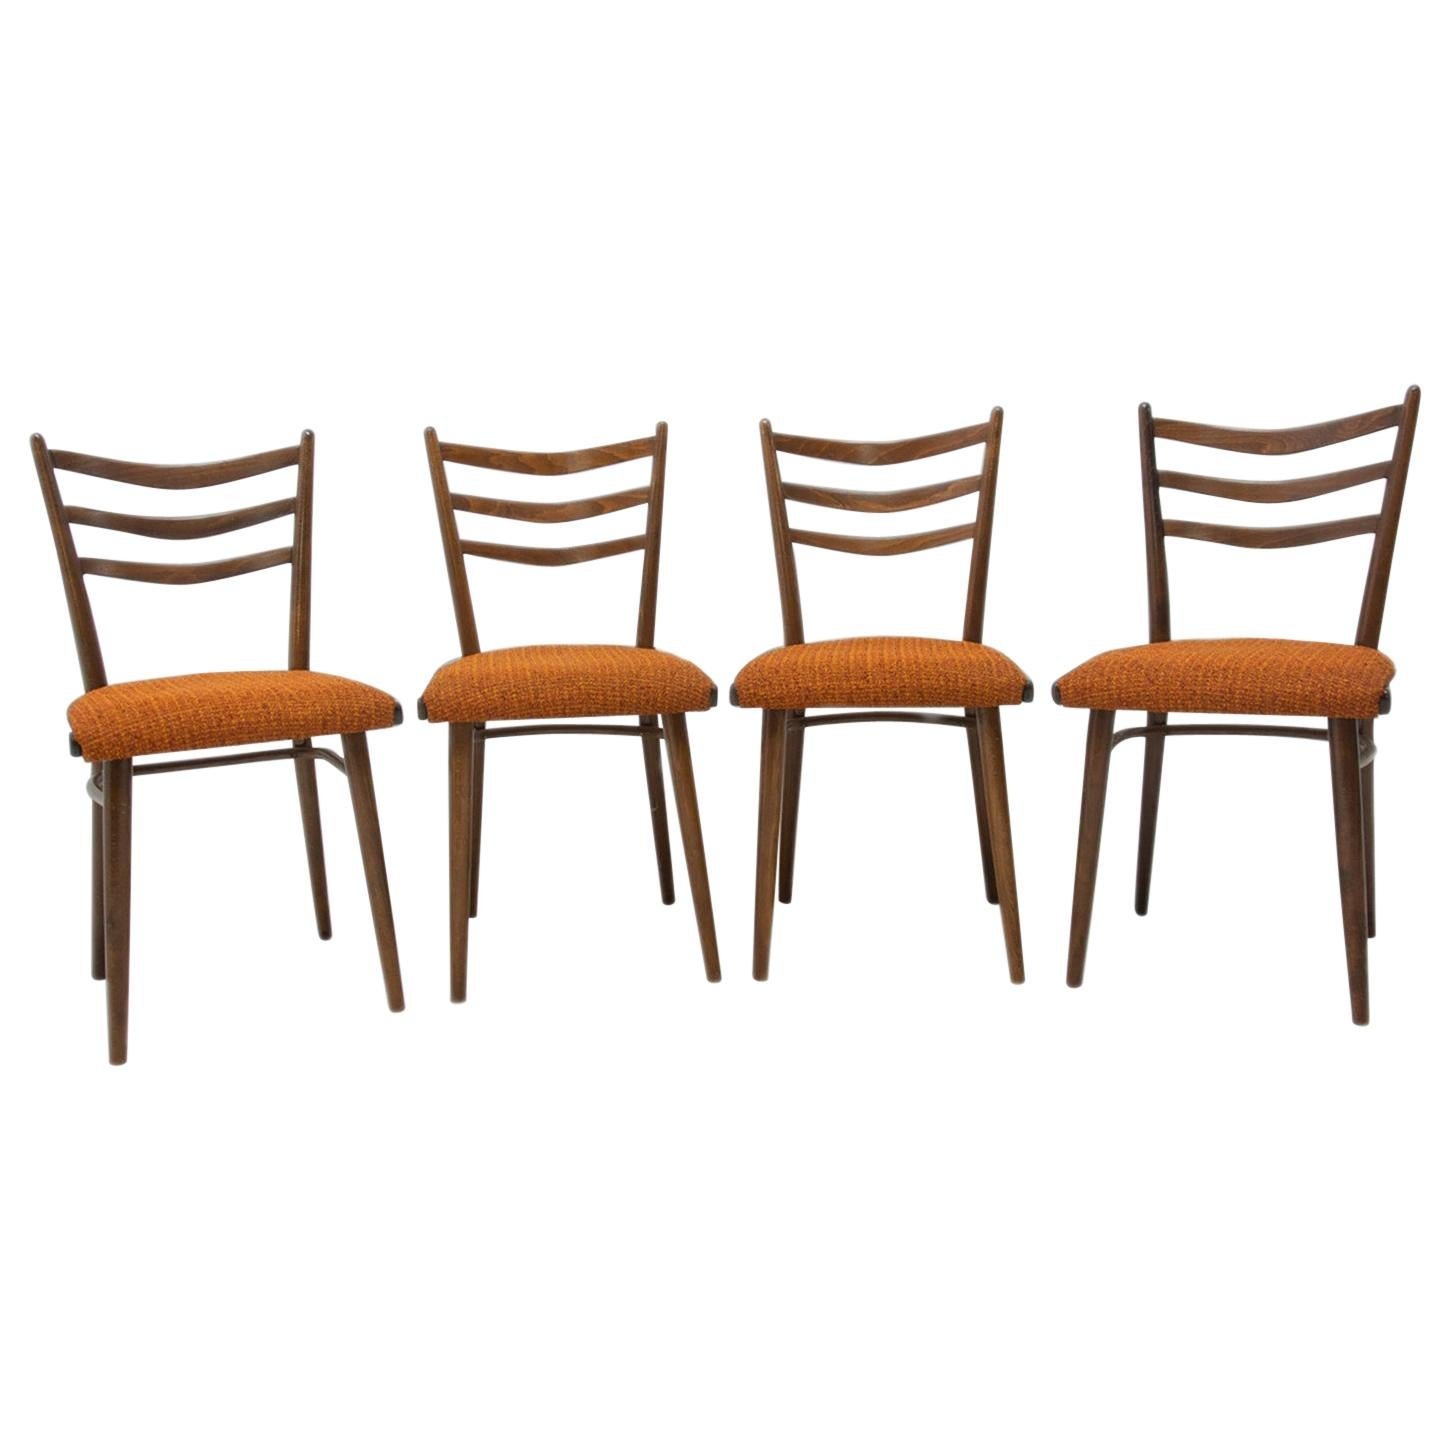 Midcentury Czechoslovak Dining Chairs, 1960s, Set of Four